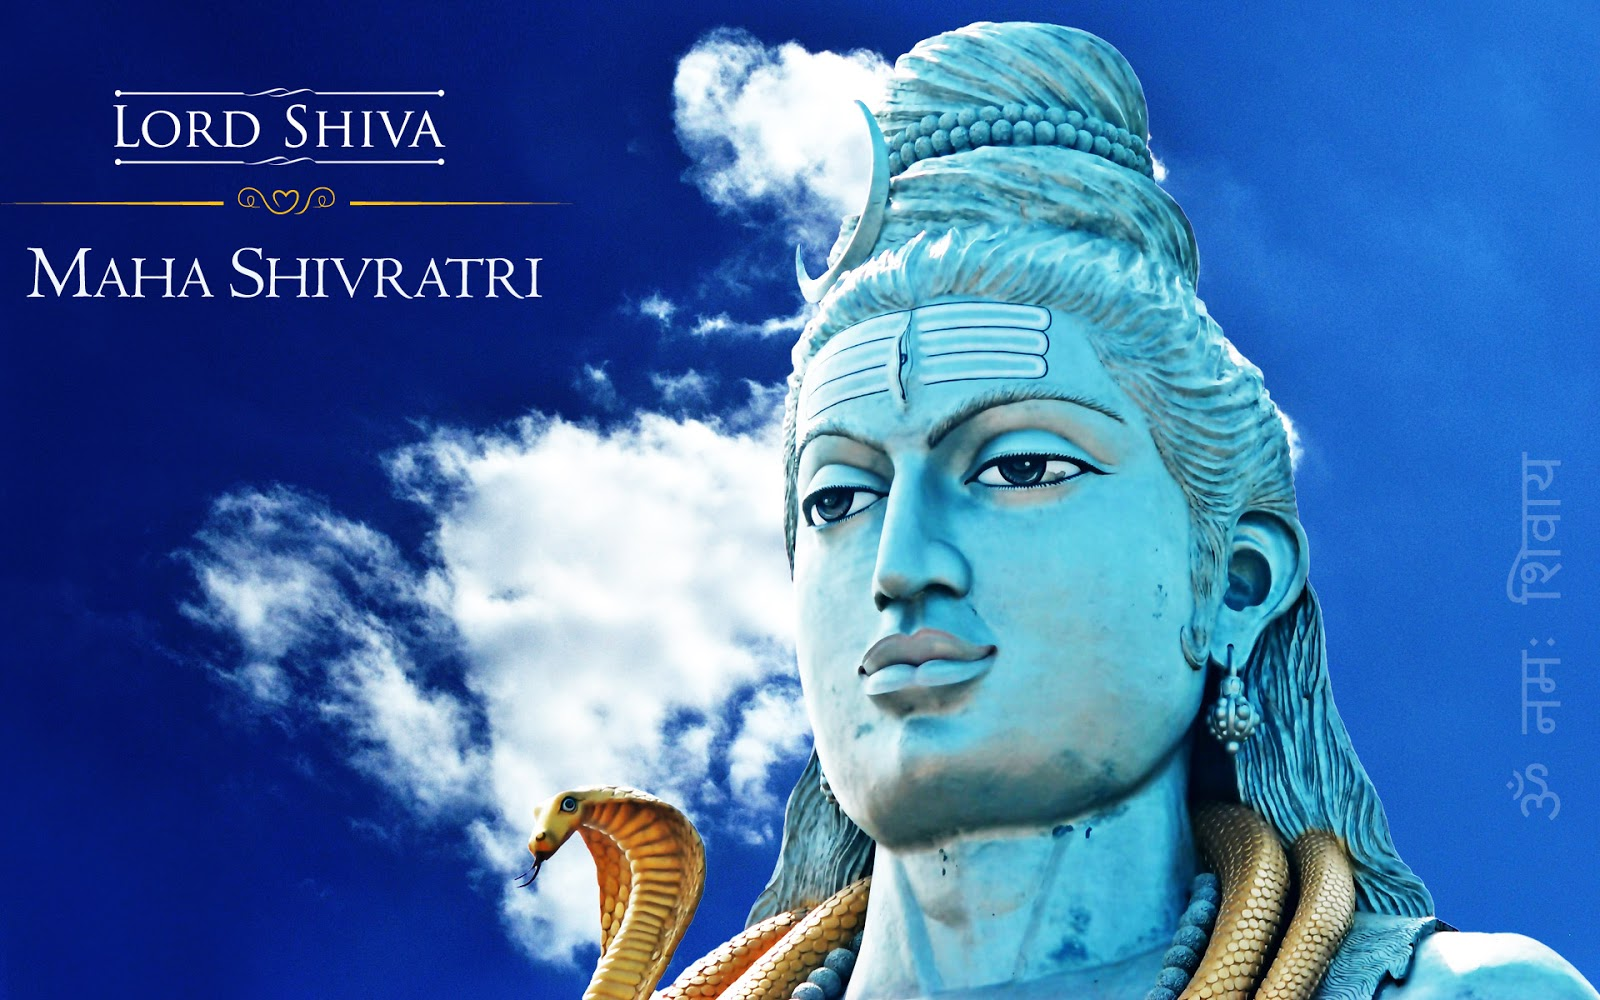 Best Wallpaper High Resolution Lord Shiva - shri-shiva-ji-god-photos  Picture_661922.jpg